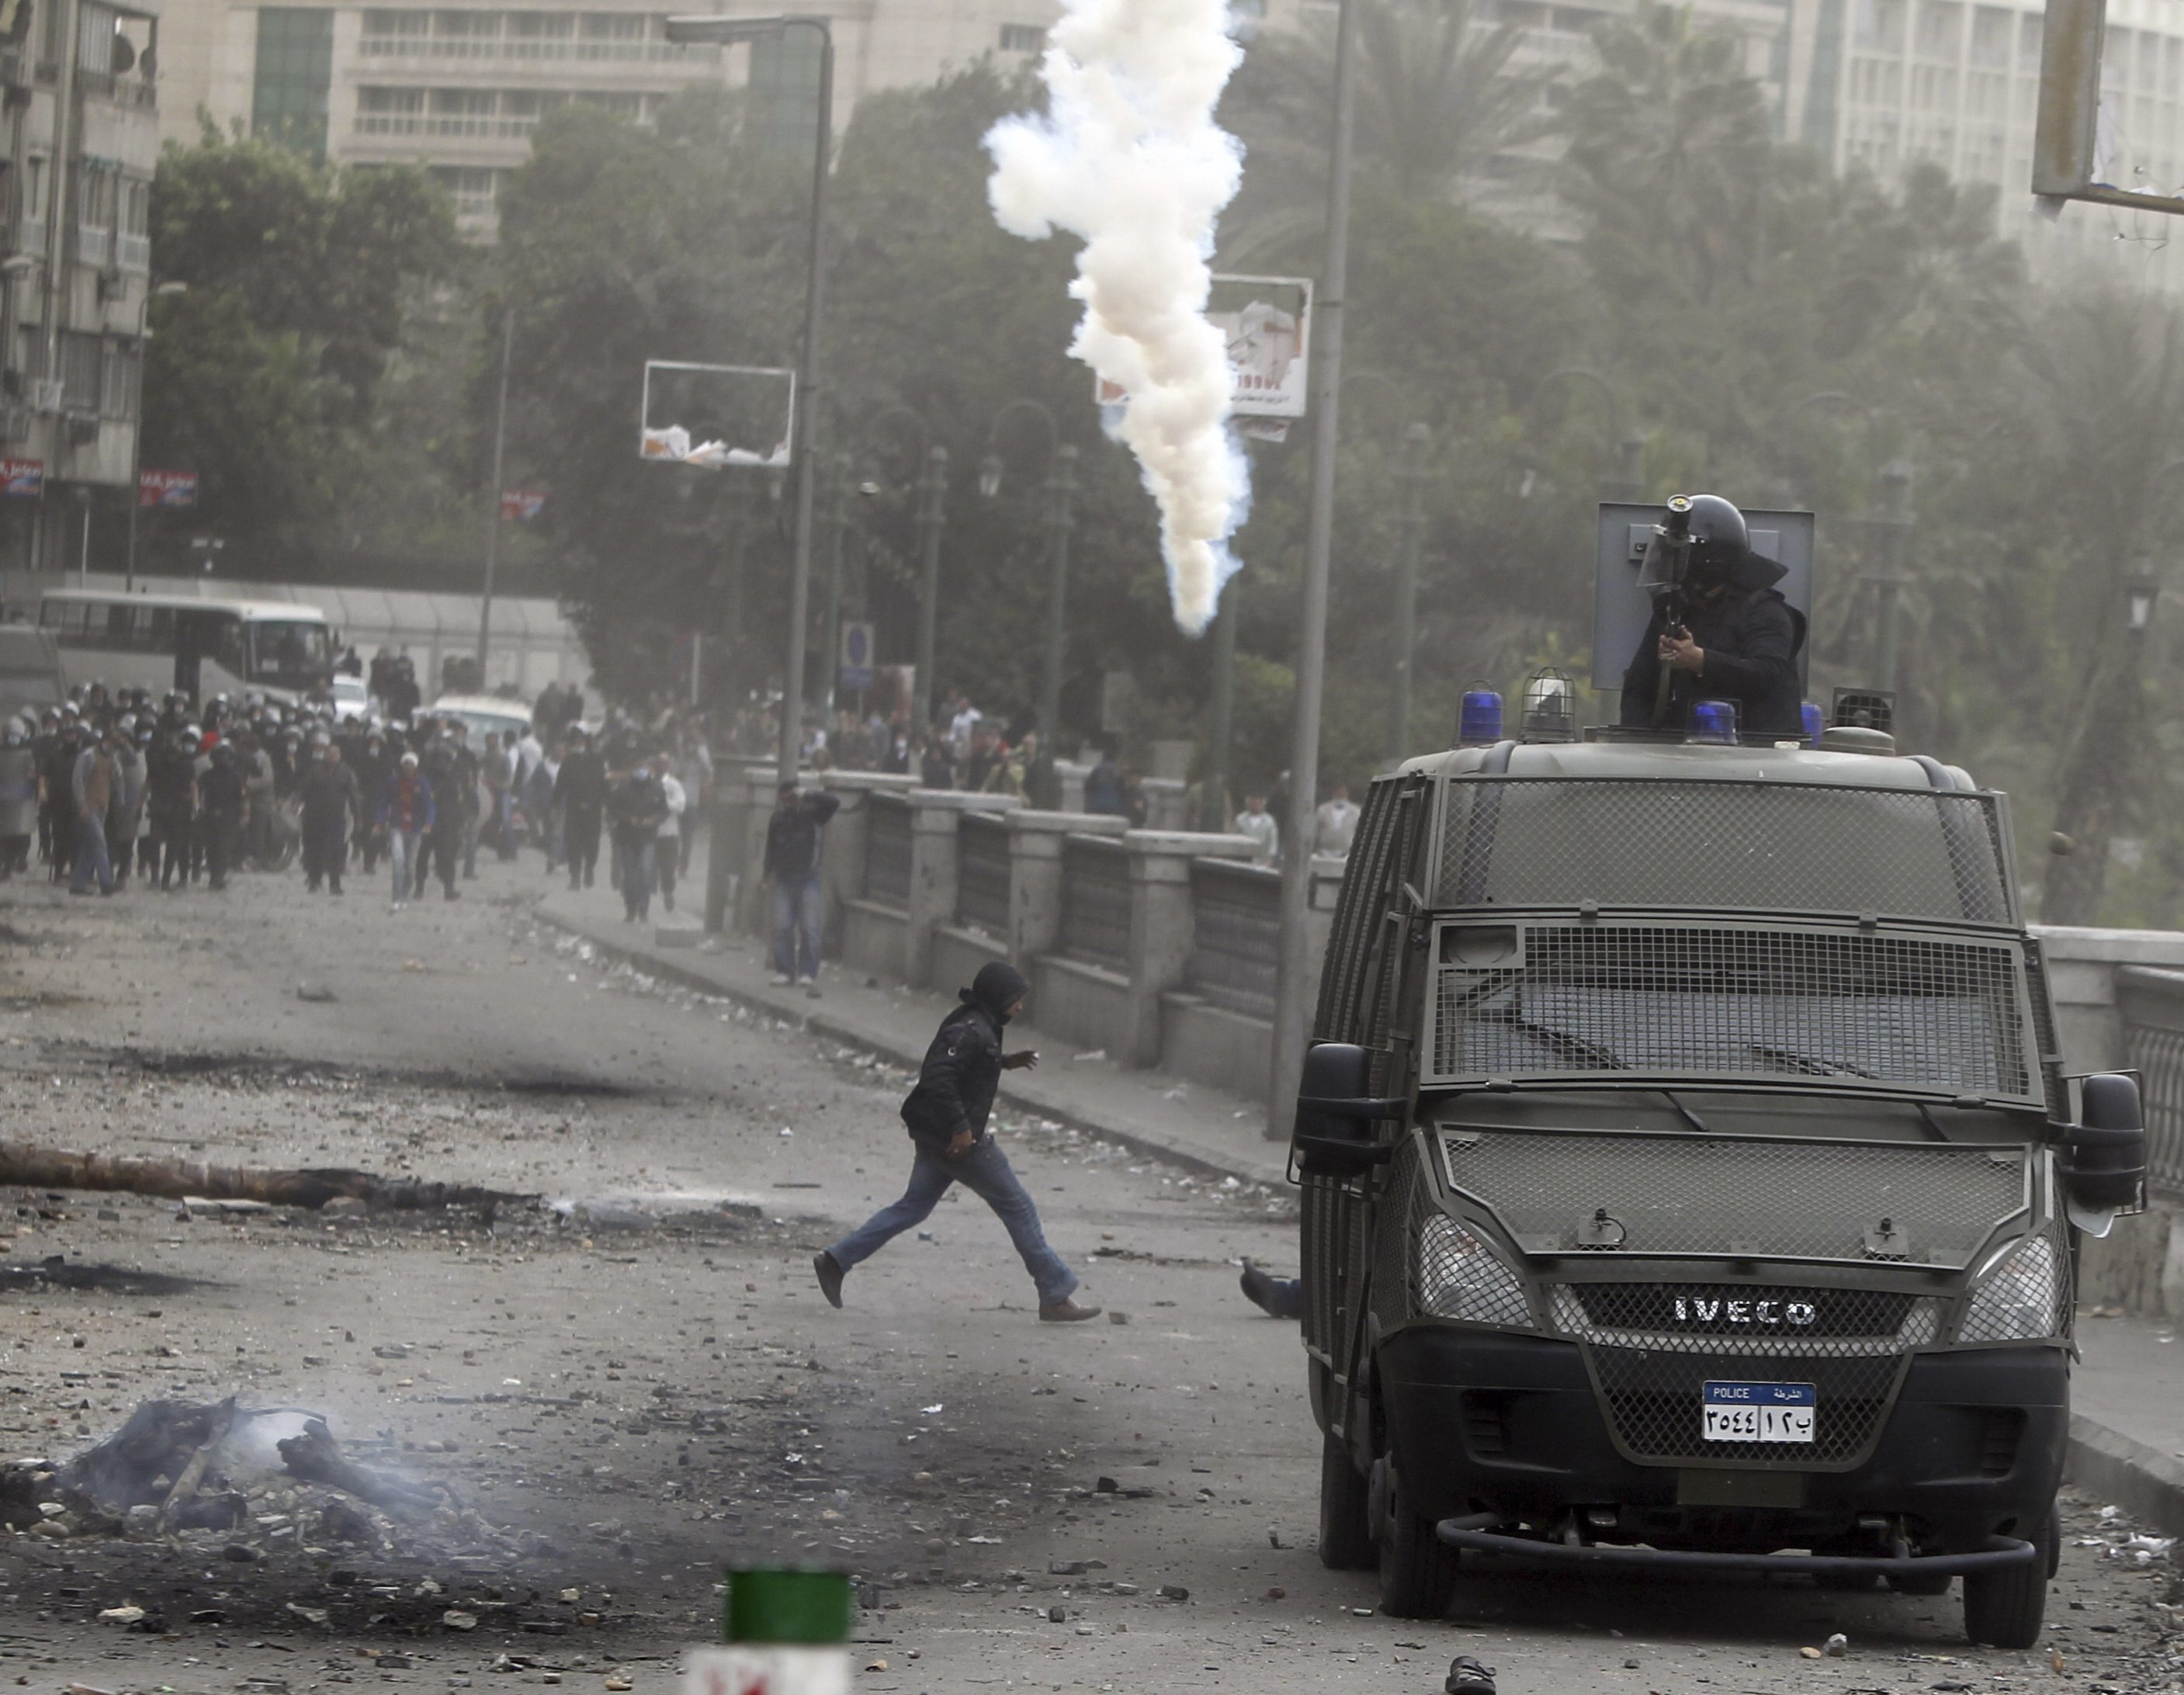 Security forces shoot indiscriminately at protesters in Cairo